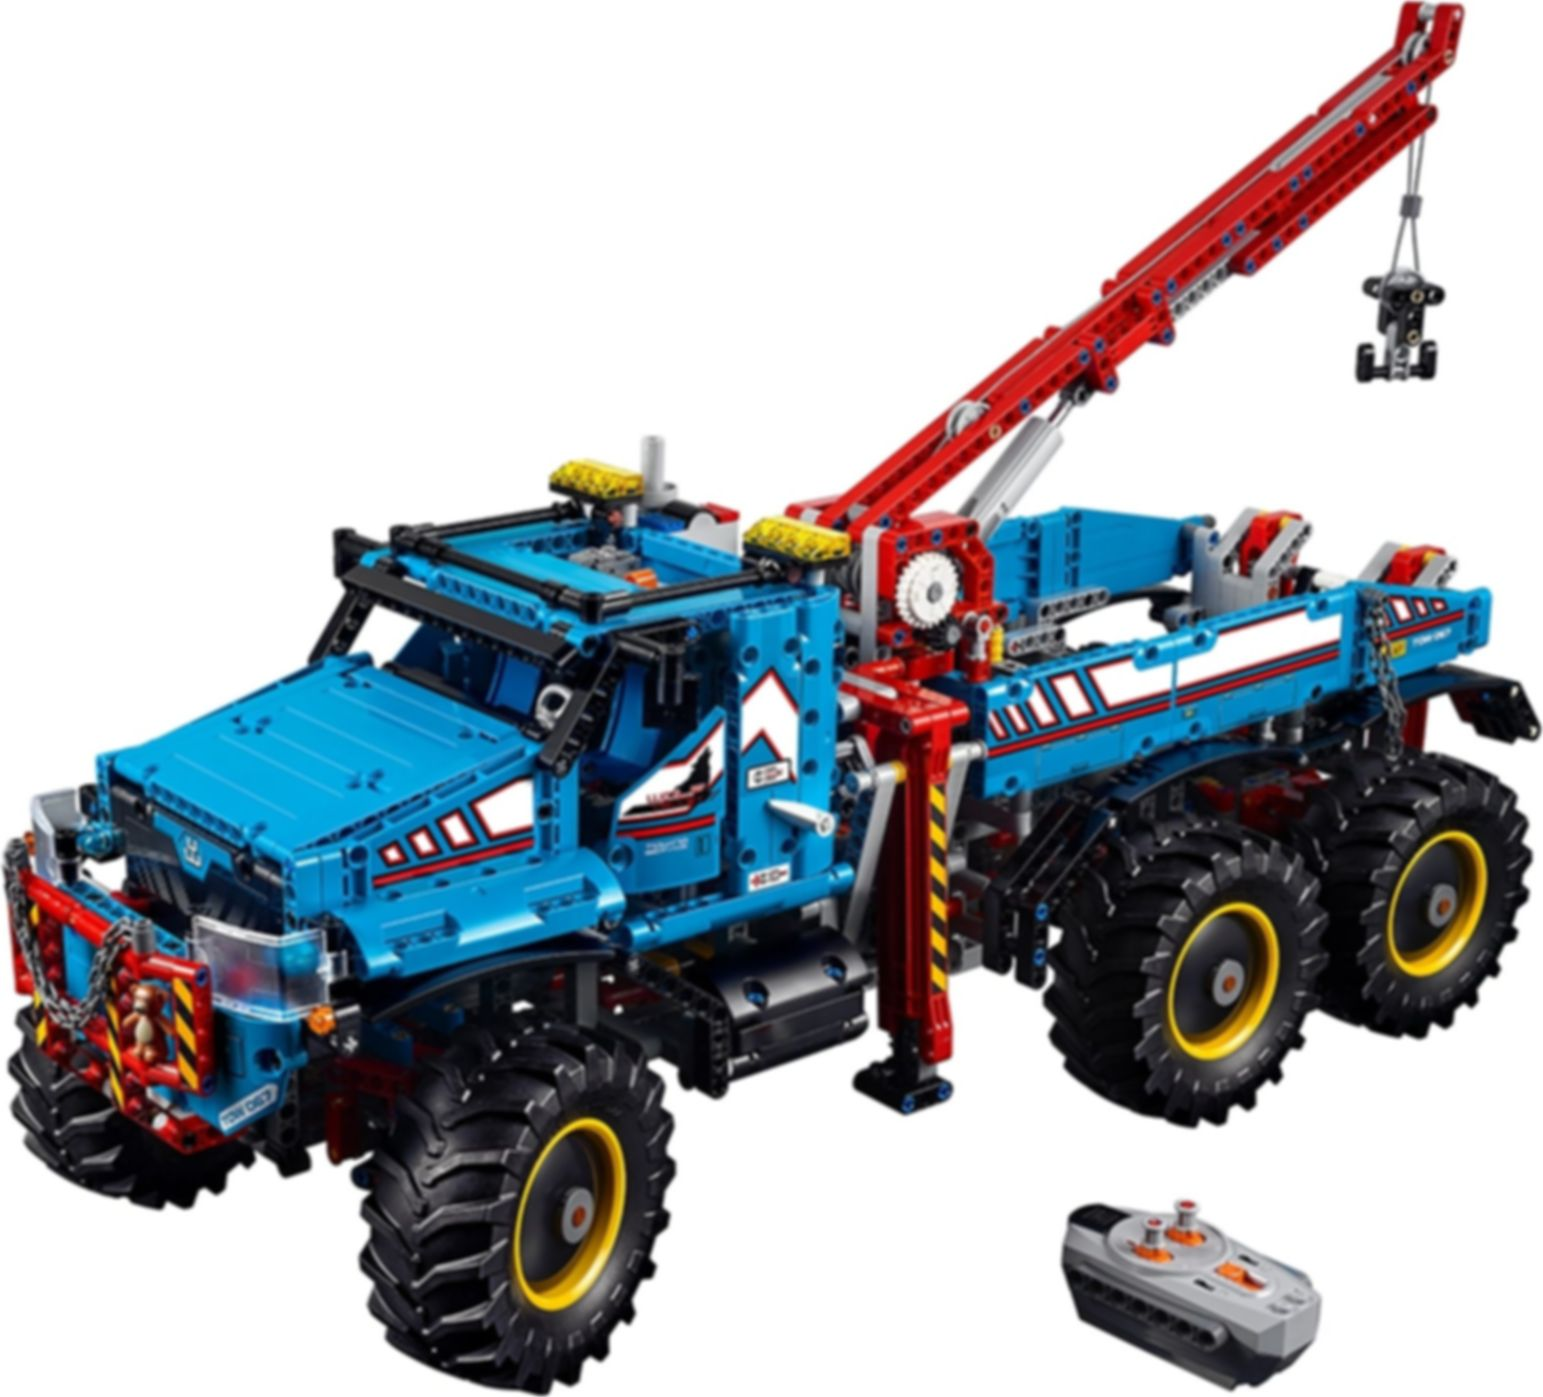 6x6 All Terrain Tow Truck components